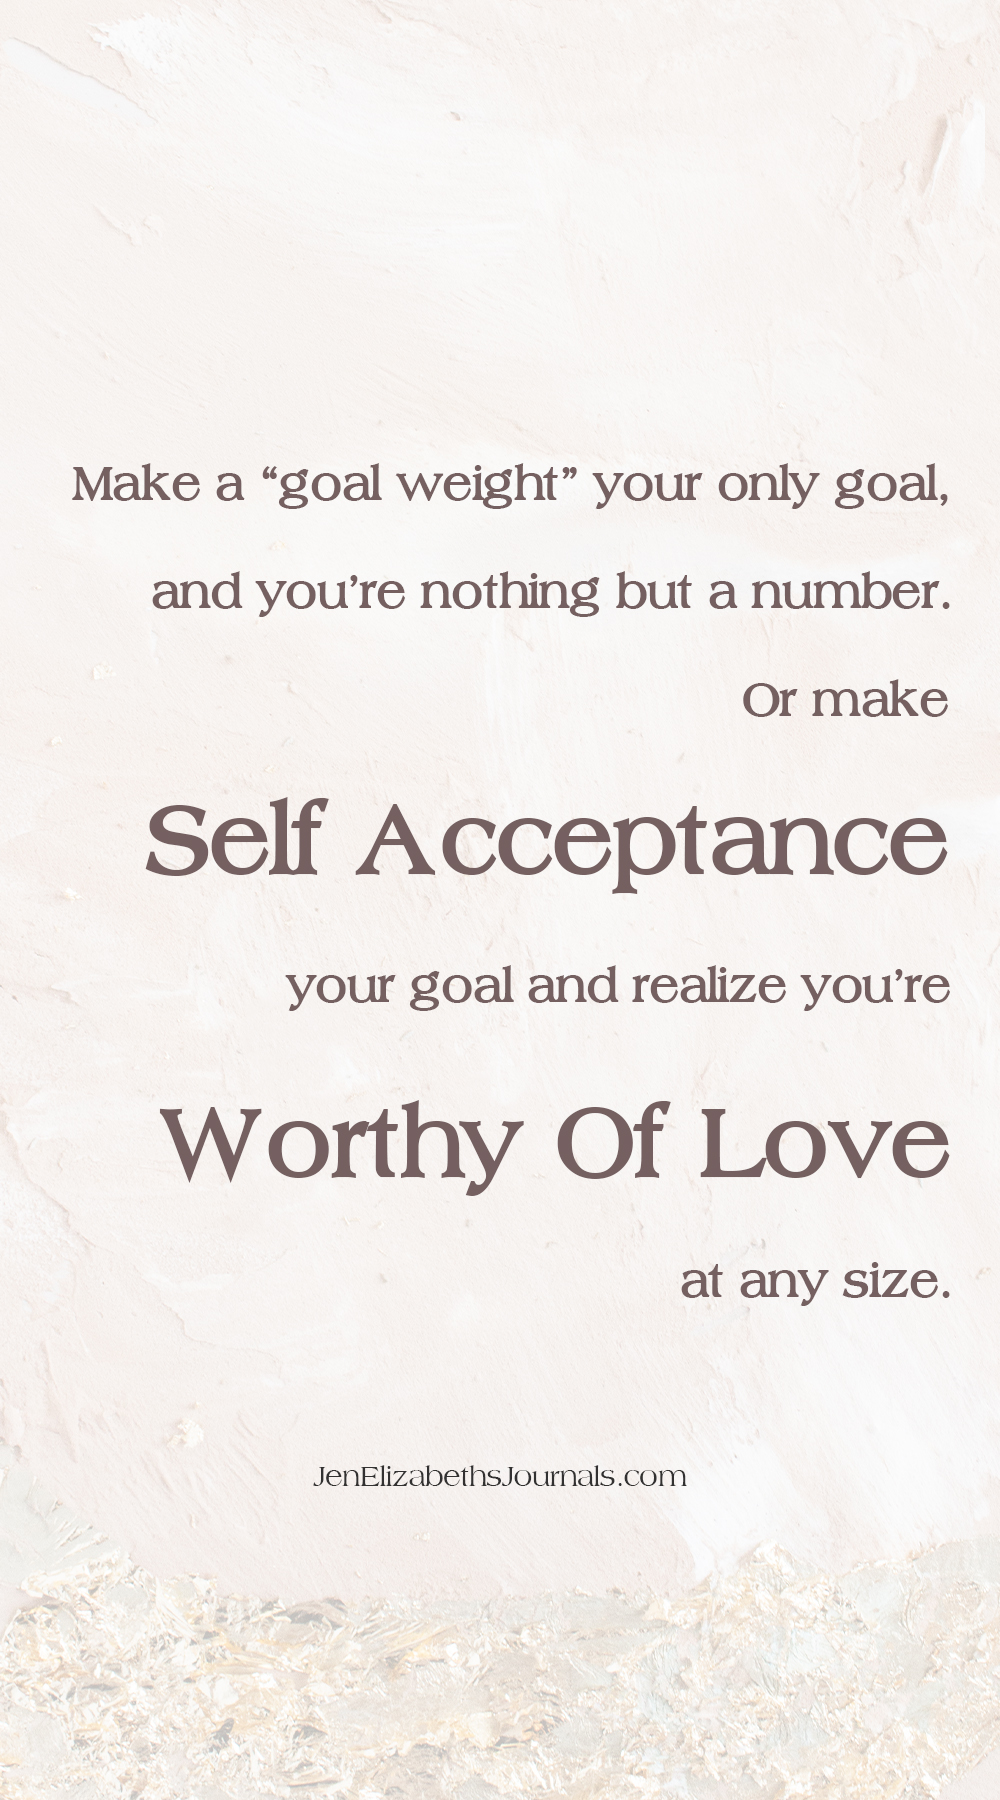 Worthy-of-Love-at-Any-Size